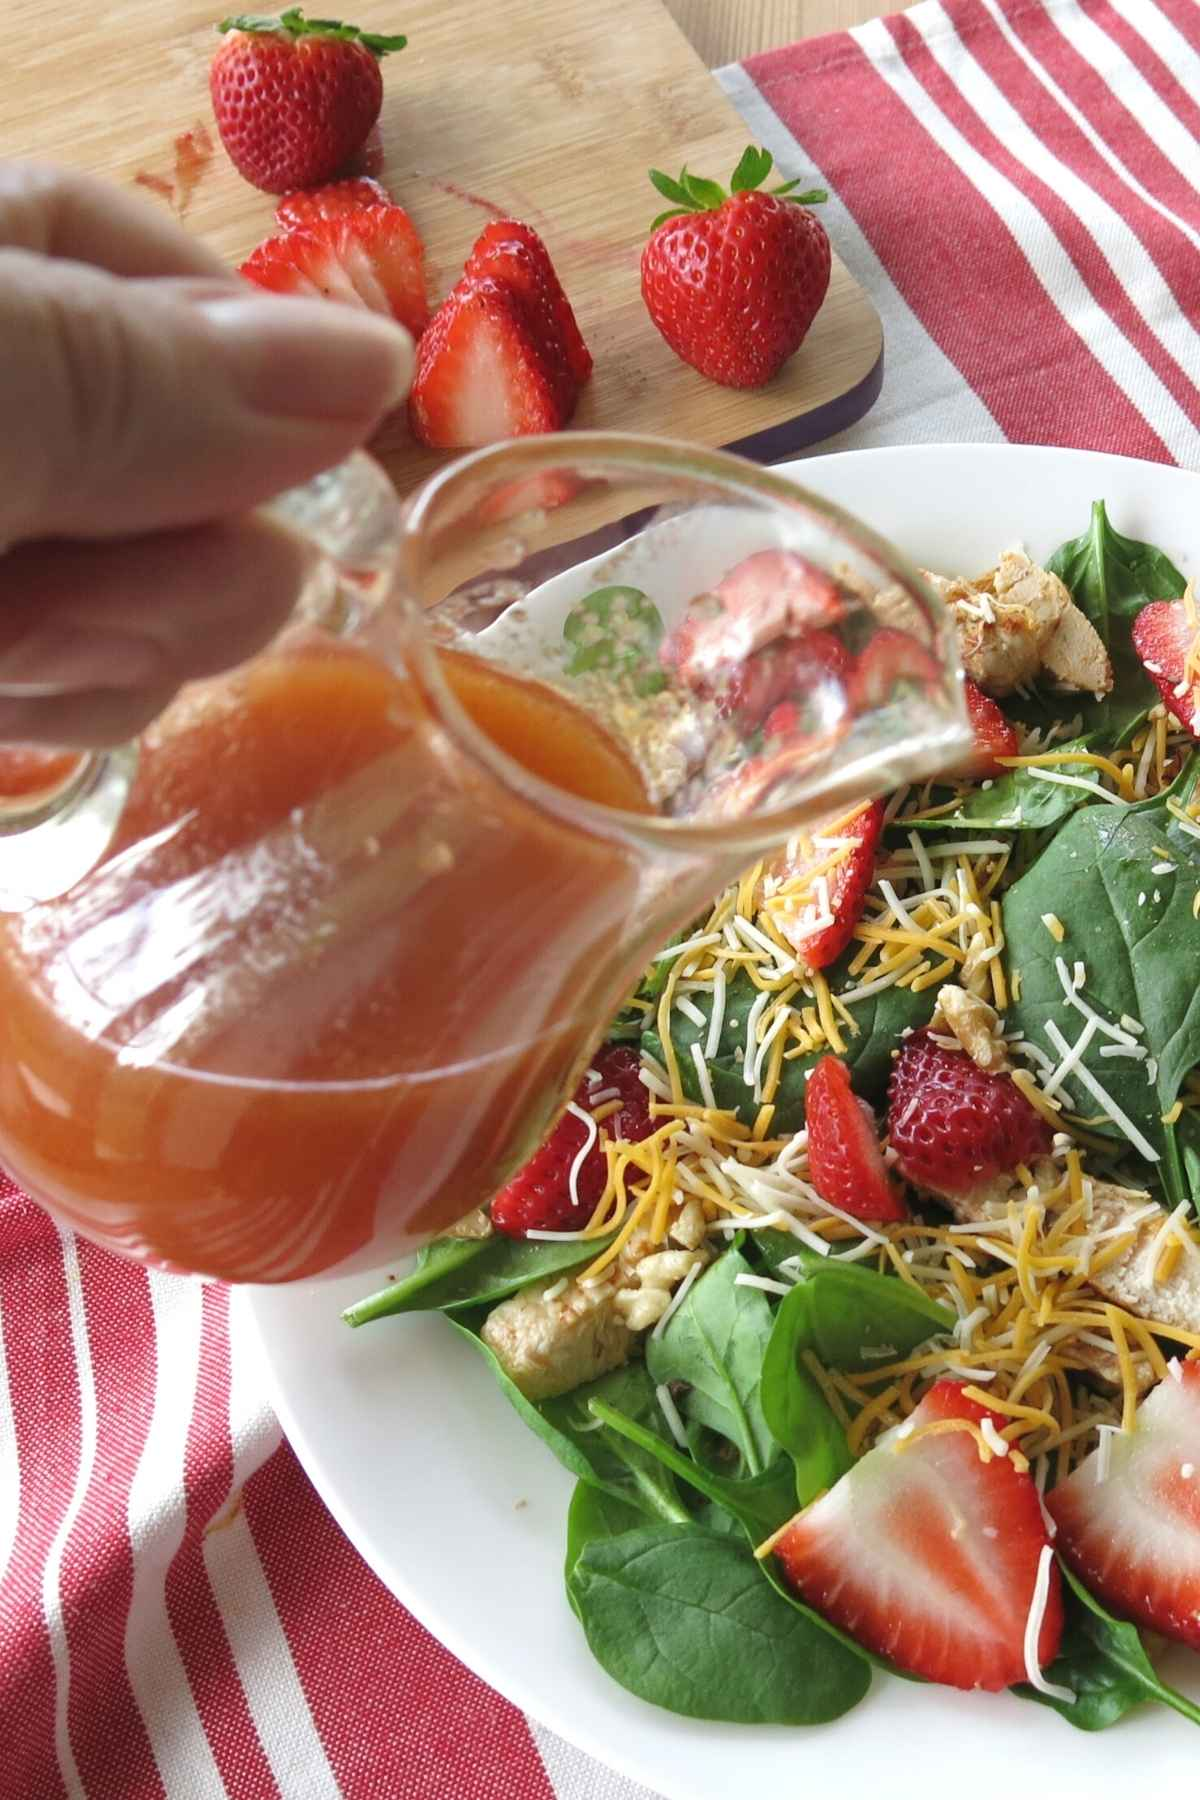 Hand pouring sweet red wine vinaigrette dressing over strawberry salad.